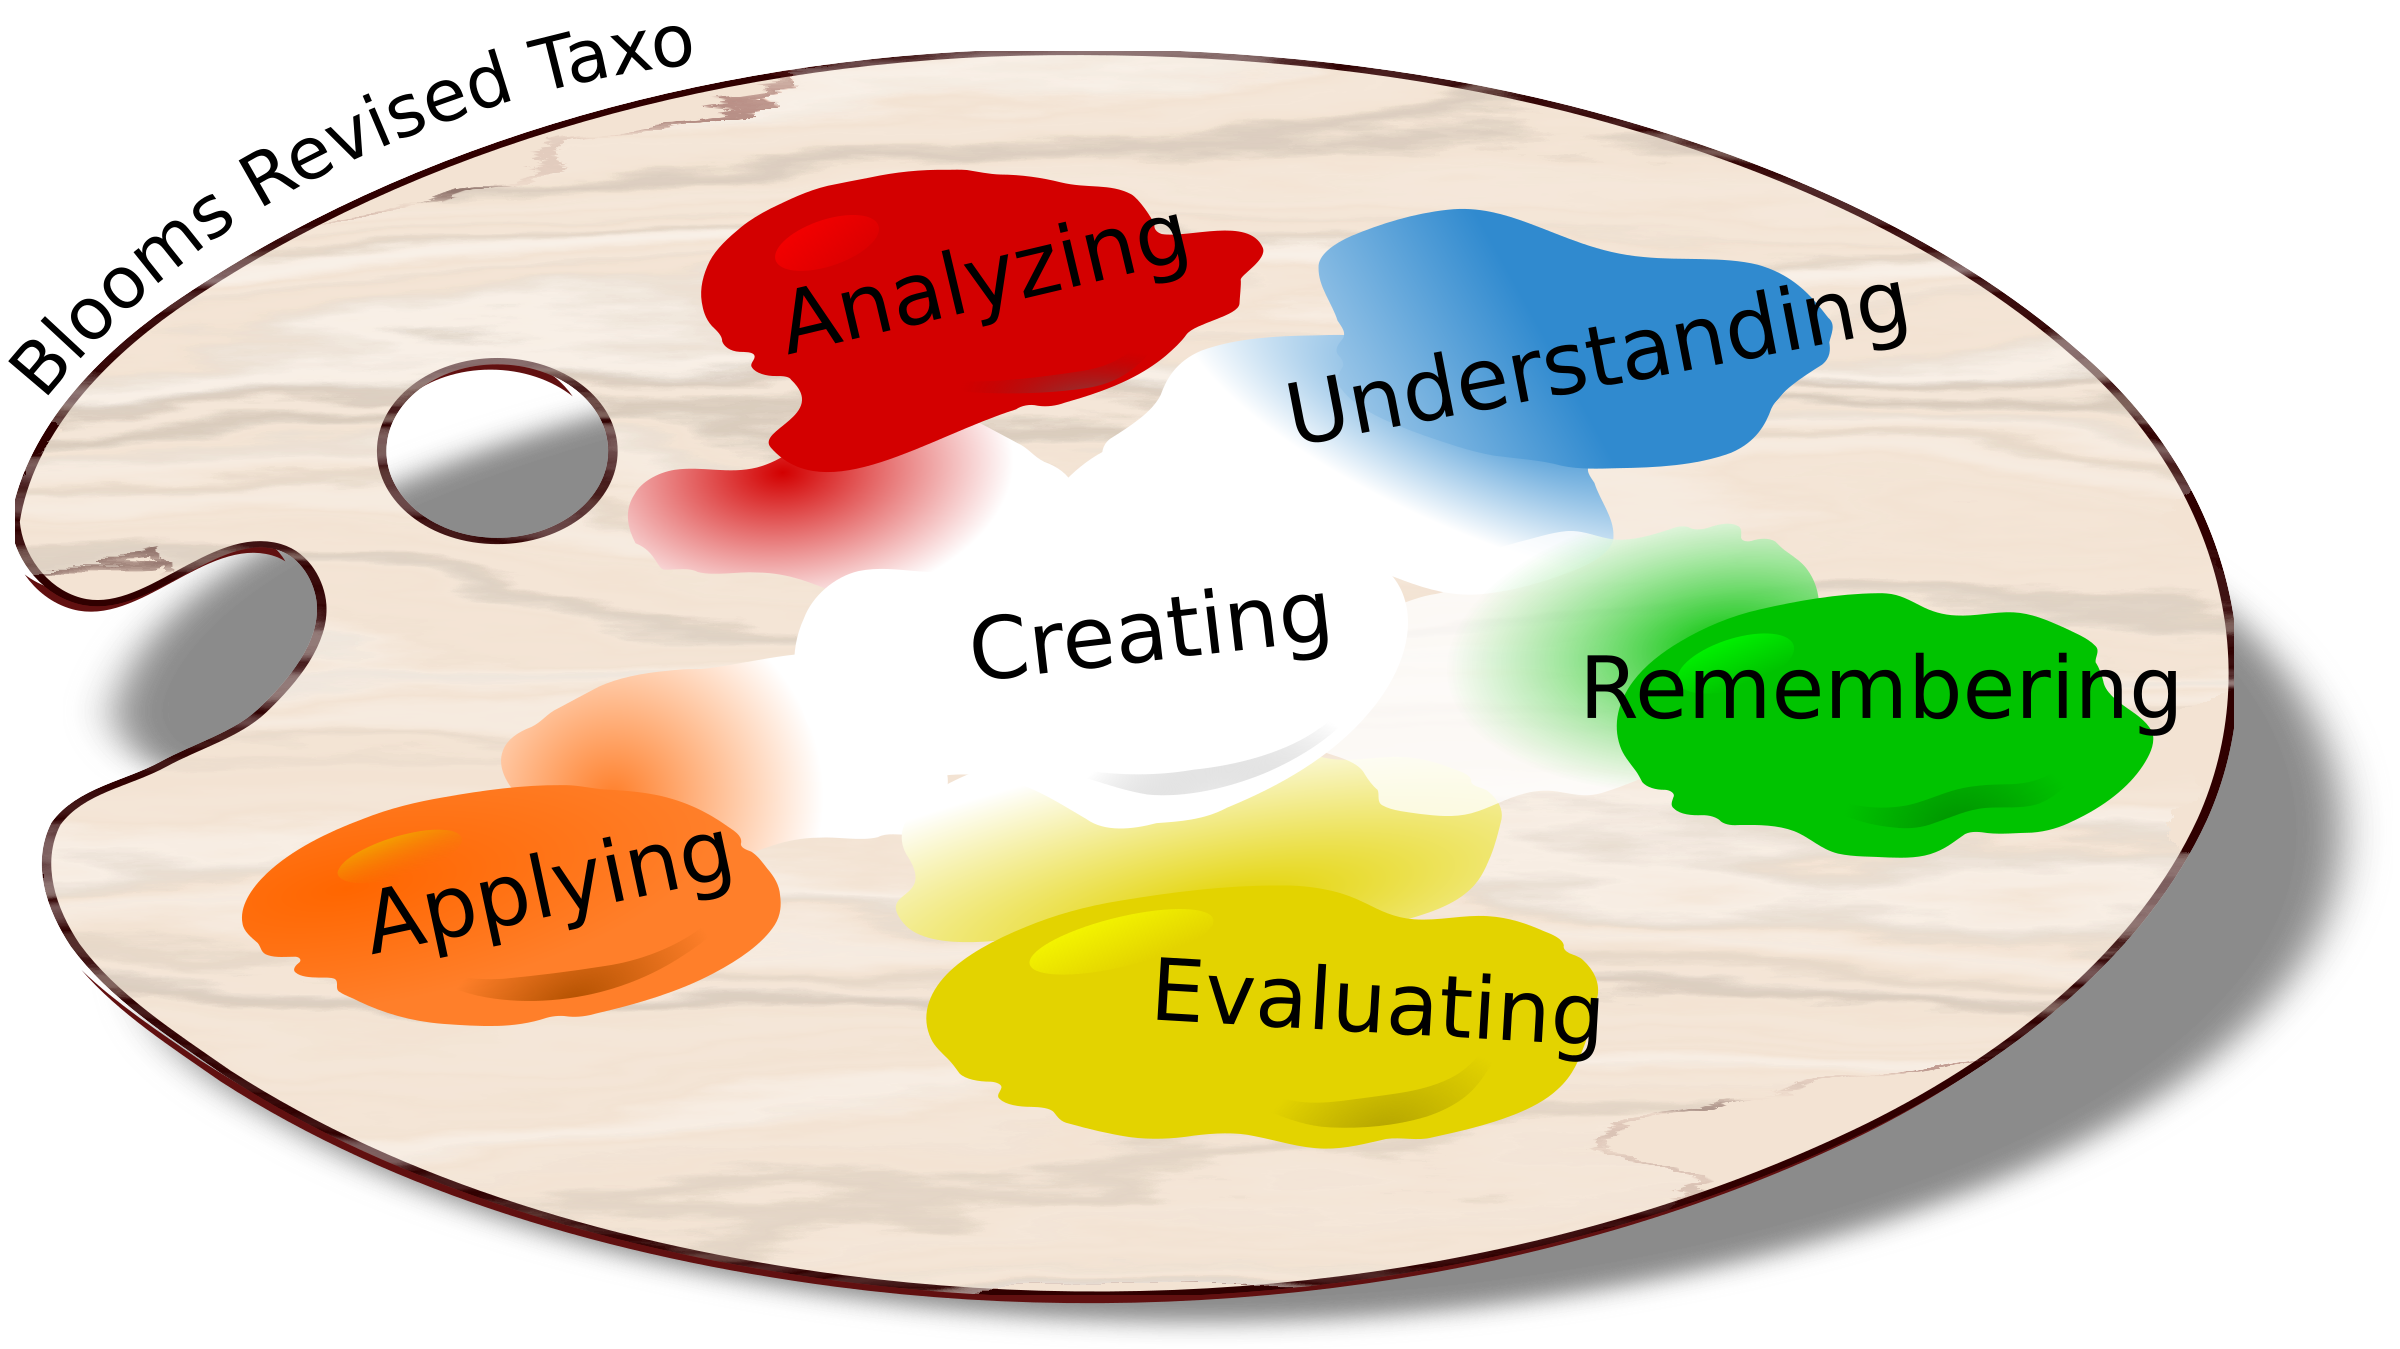 Blooms taxonomy big image. Evaluation clipart educational assessment